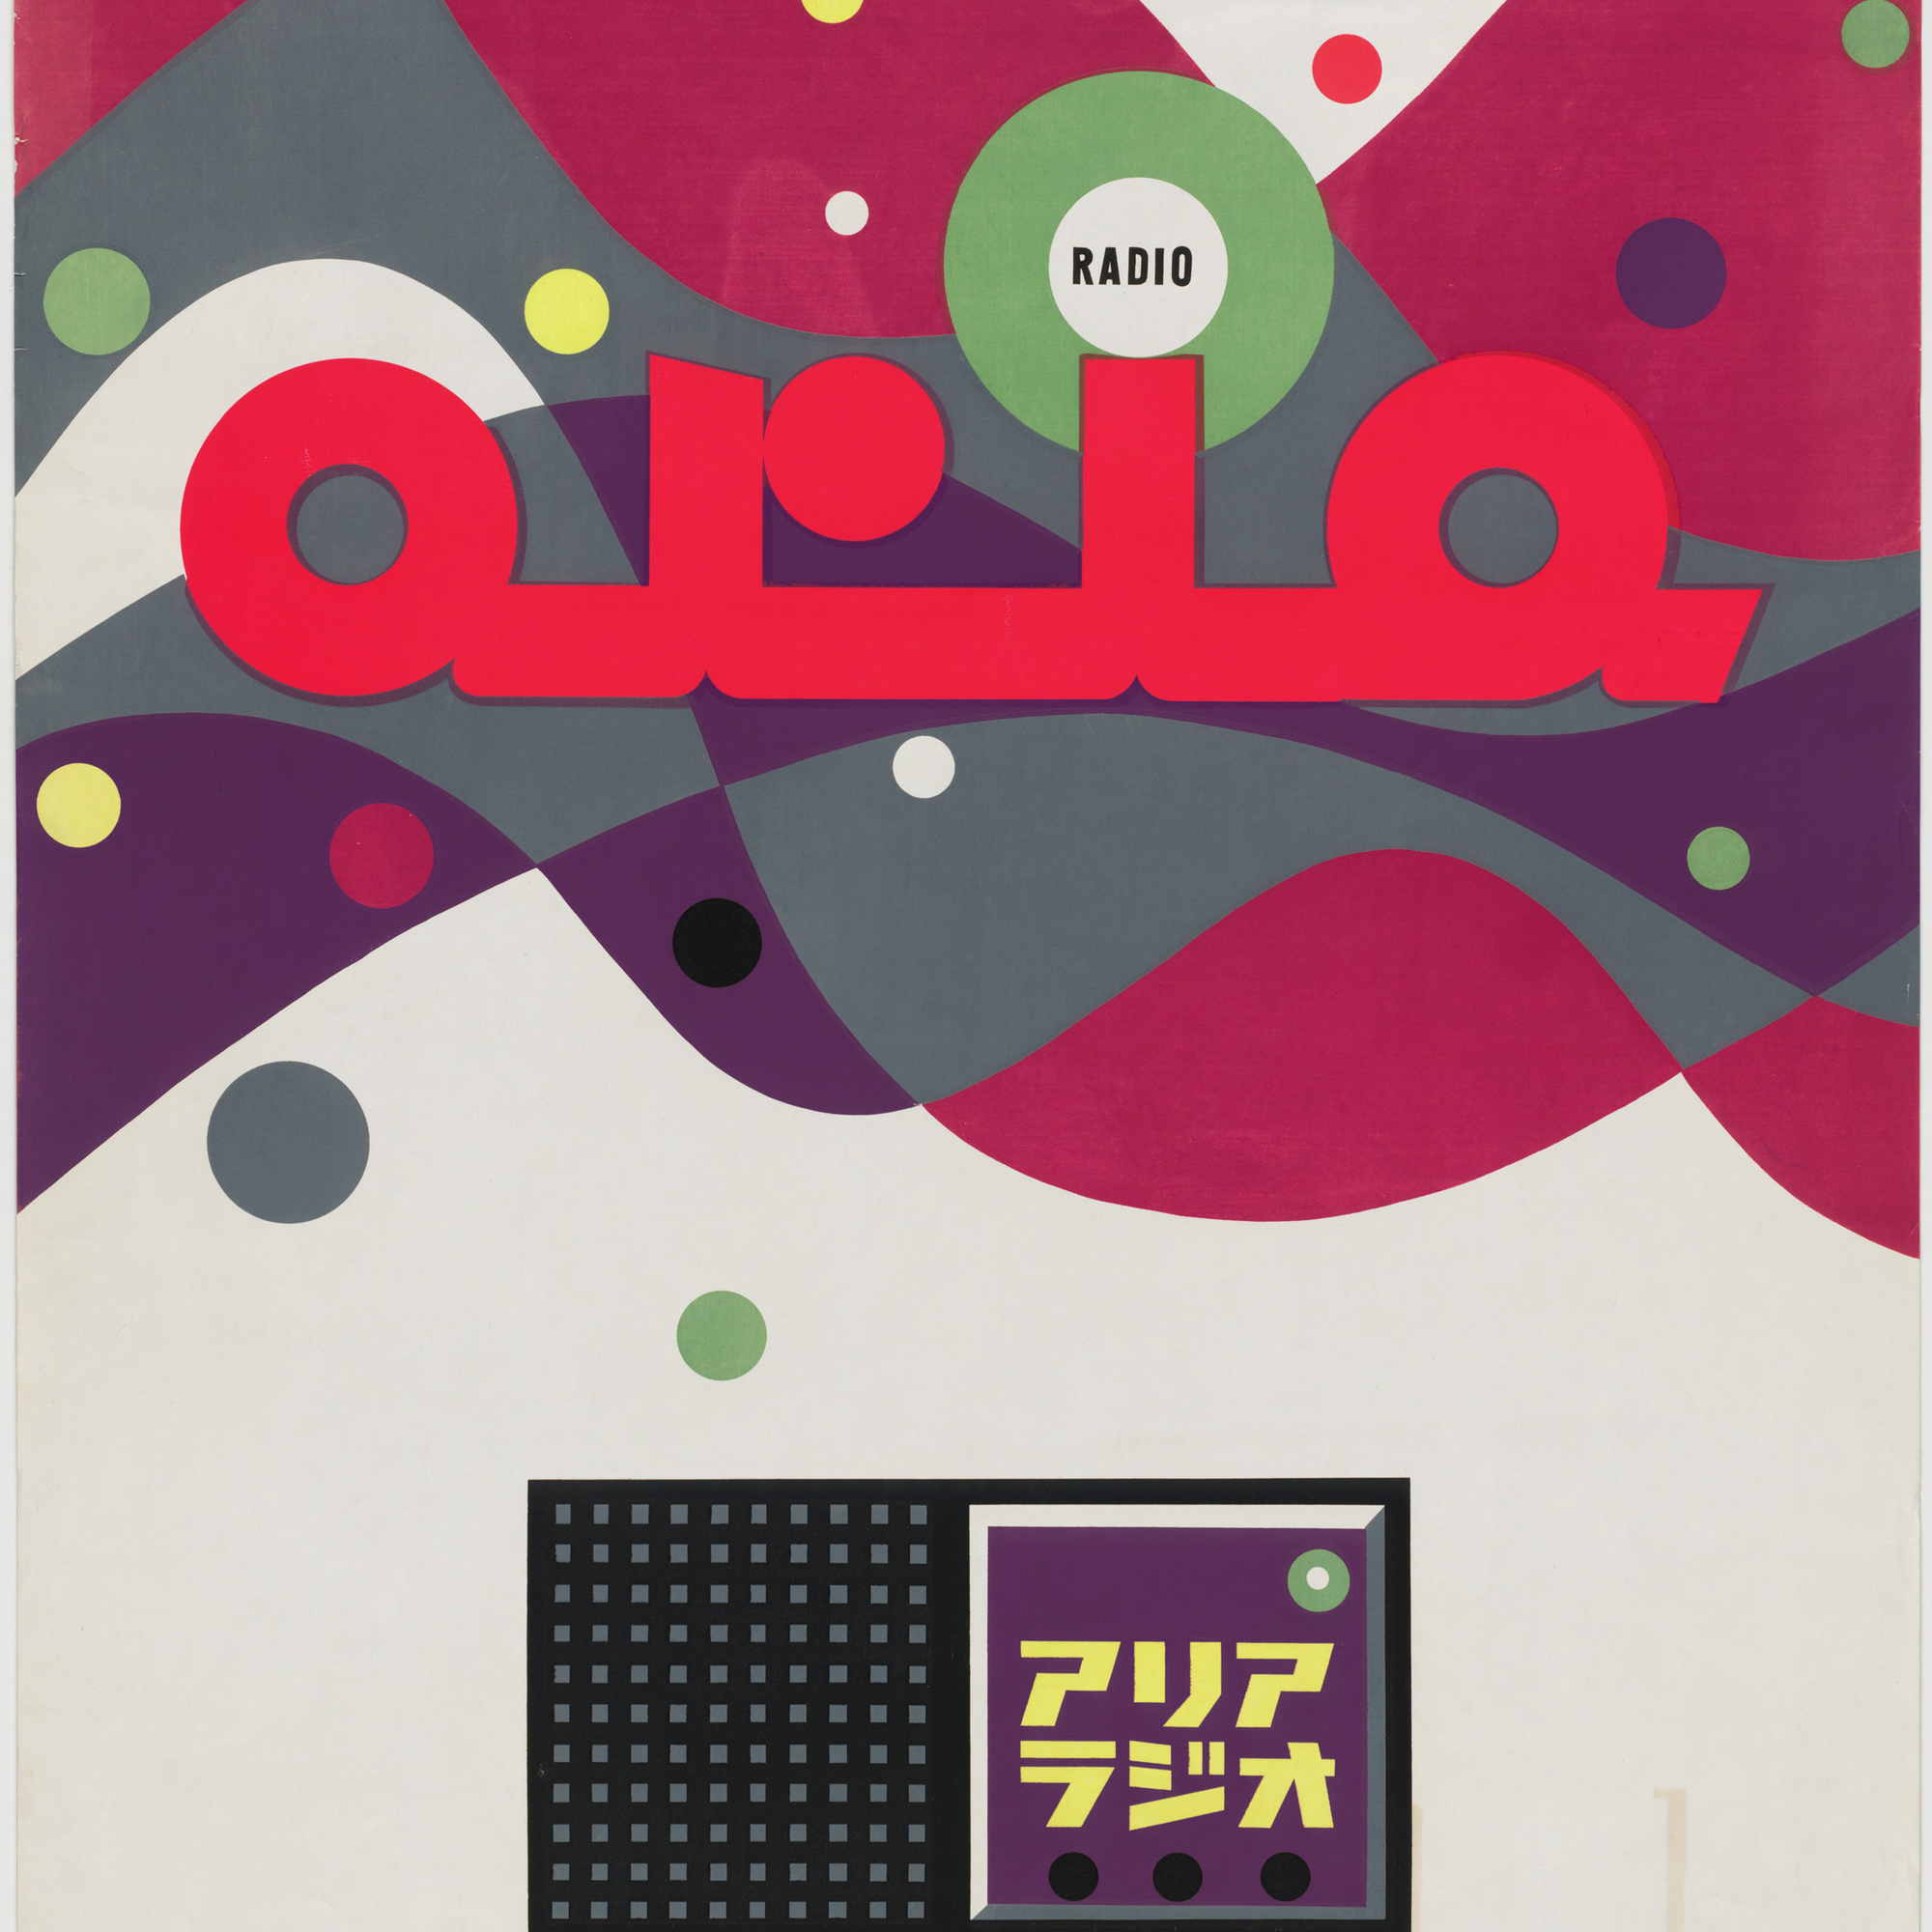 "Hiroshi Ohchi. Radio. 1954. Silkscreen, 40 1/2 x 28 1/4"" (102.9 x 71.8 cm). The Museum of Modern Art, New York. Gift of the designer"